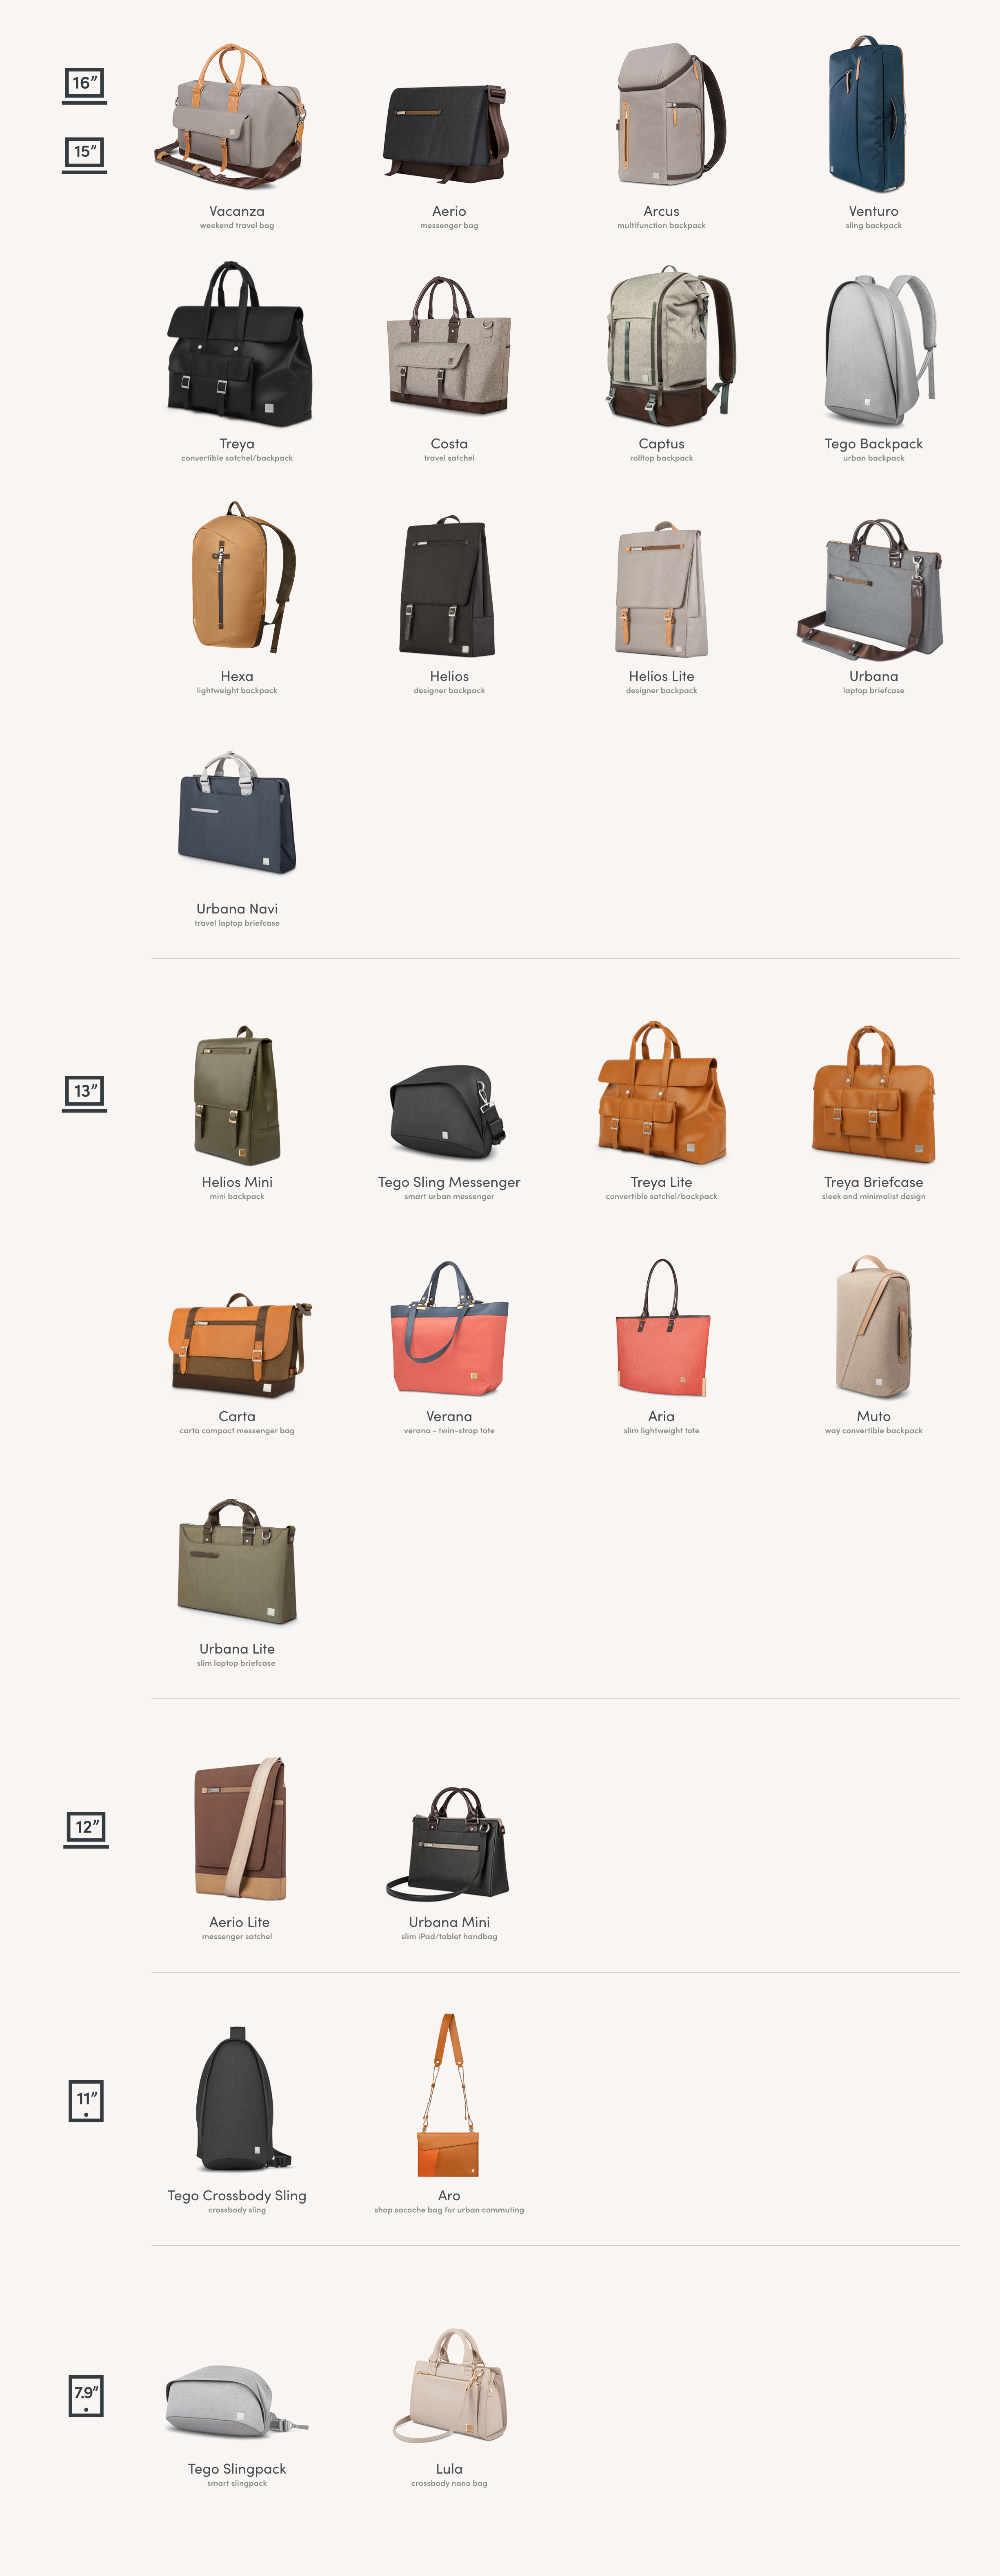 what_laptop_sizes_fit_in_moshi_bags__1_.jpg